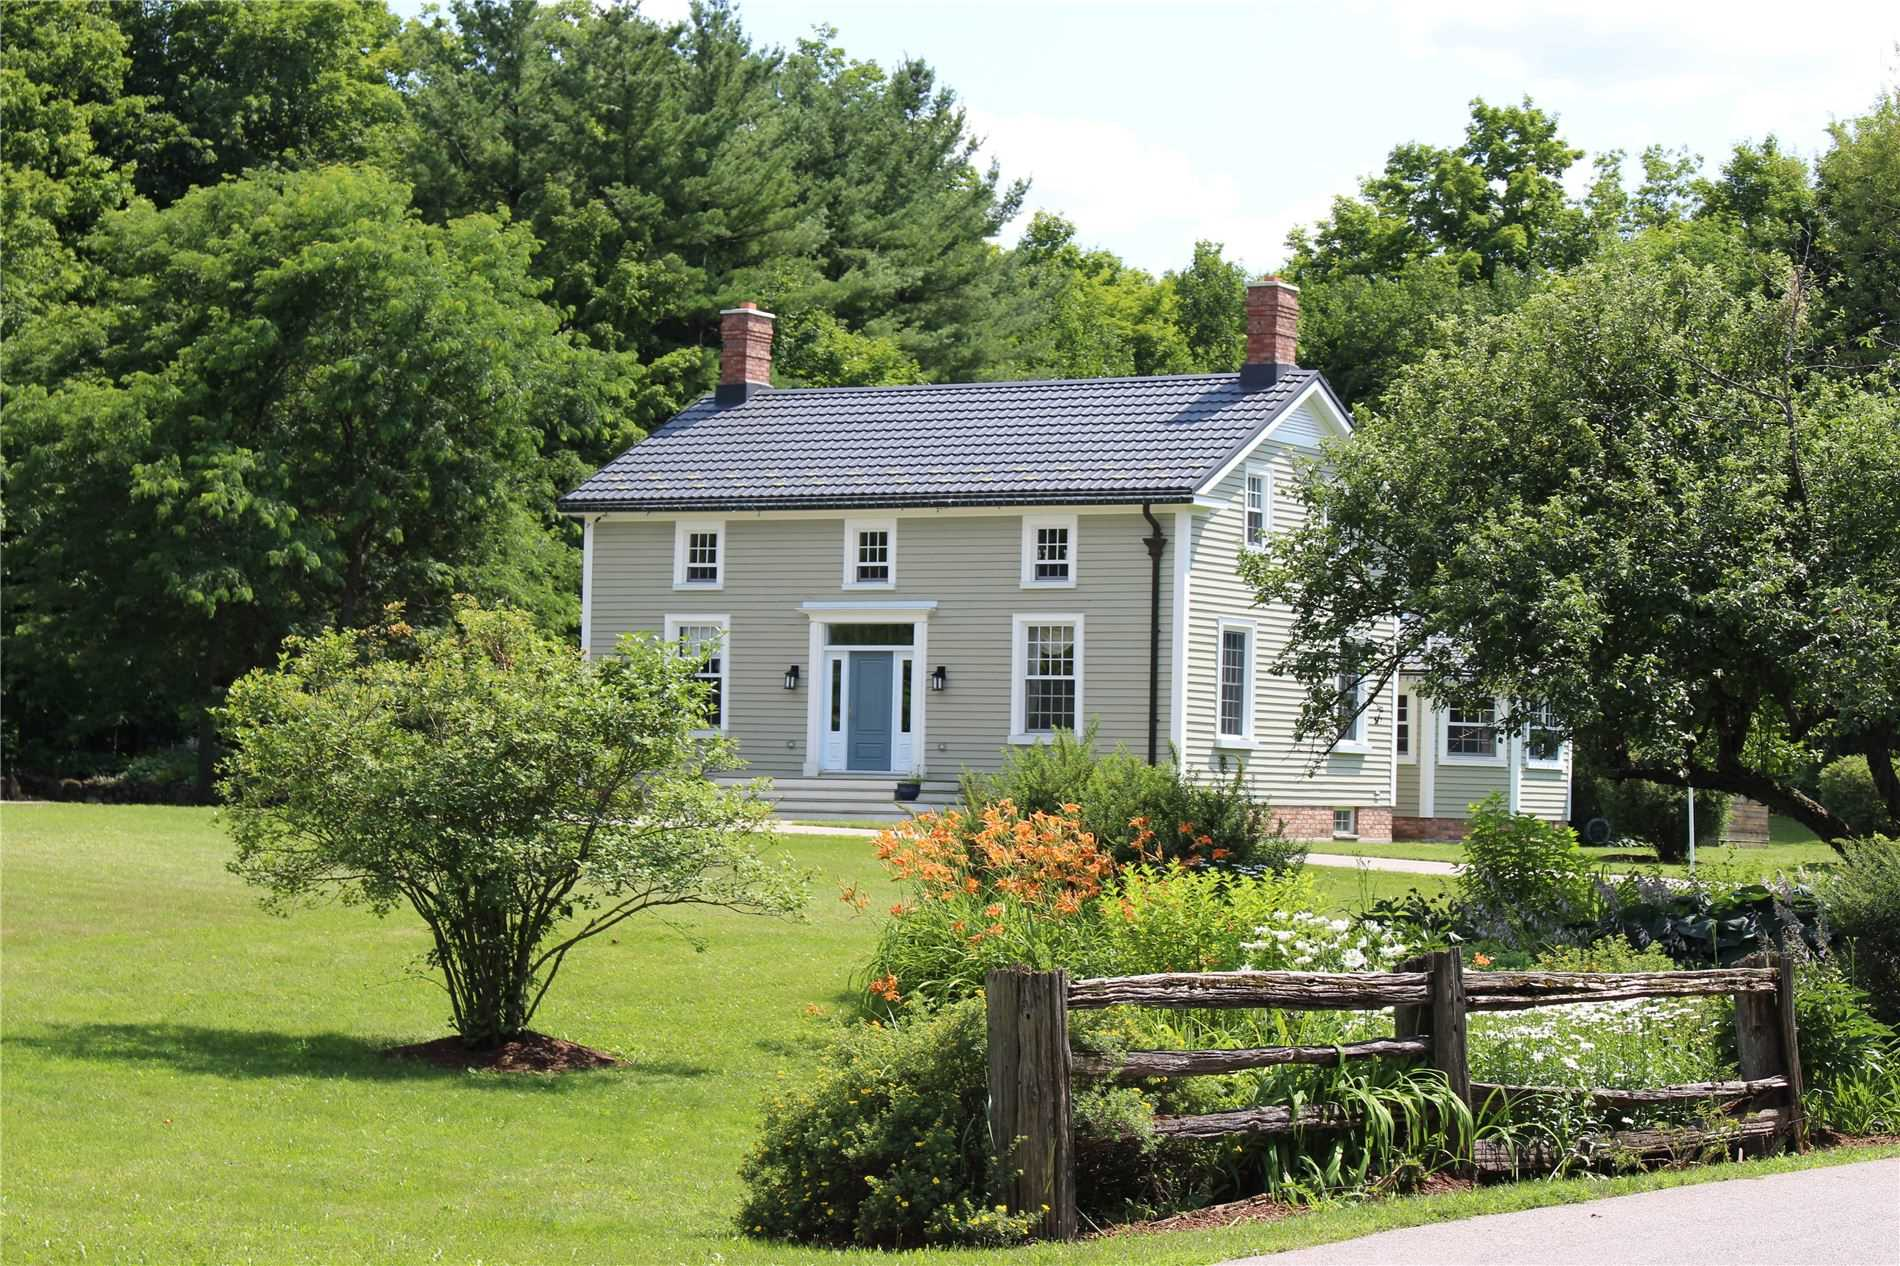 Spectacular Georgian Estate (C.1856) On 42+ Acres Of Secluded Countryside. 4+1Bed, 3.5Bath W/Original Pine Cabinets, Floors, Trim &Doors. 2 Stry Dbl Garage, Lg Country Kitchen W/Cladded Appliances & Built-In Meile Coffeemaker. Formal & Family Living Spaces, Library W/Fireplace, Exquisite English Country Gardens. Finished Basement W/Inlaw Potential. Property Features Trails, Barns &Outbuildings Incl An Indoor Hockey Rink! Mins To 401 & All Amenities